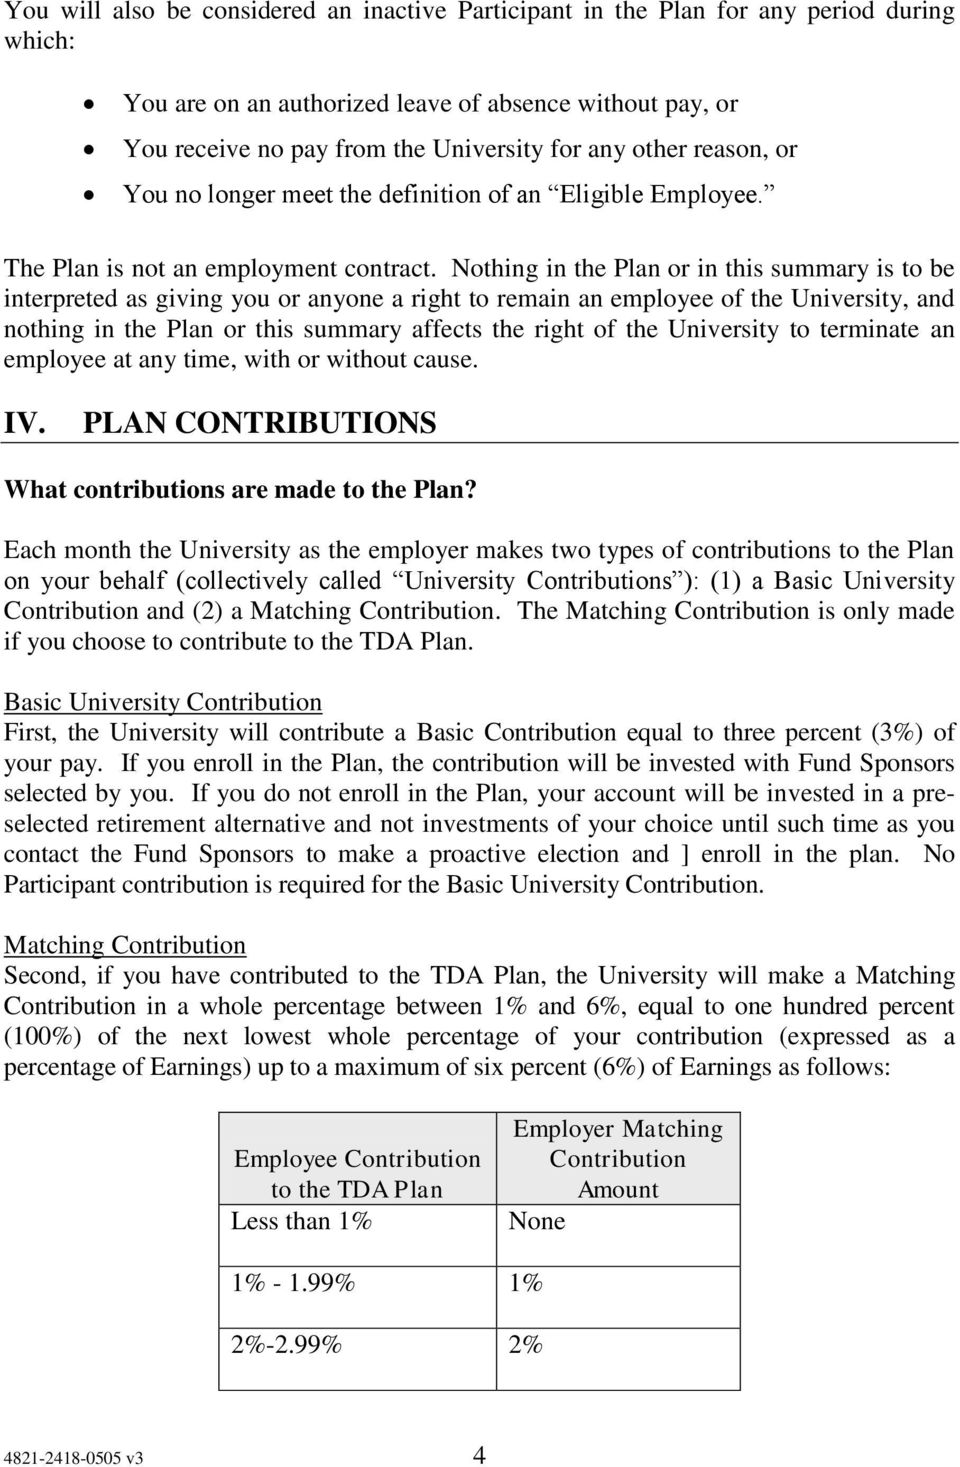 Nothing in the Plan or in this summary is to be interpreted as giving you or anyone a right to remain an employee of the University, and nothing in the Plan or this summary affects the right of the